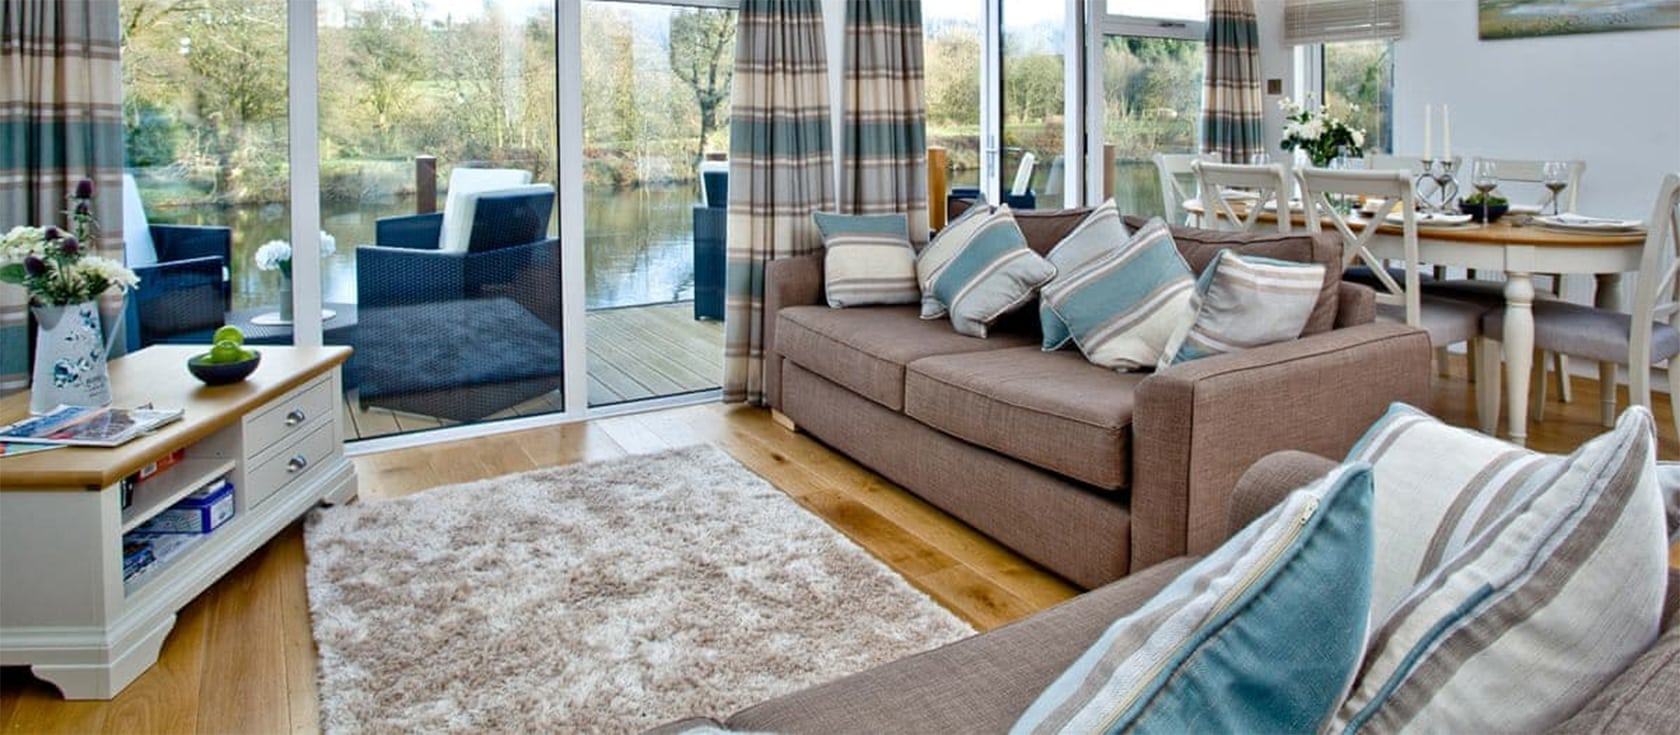 Waters Edge, Lakeview Manor, Dunkeswell